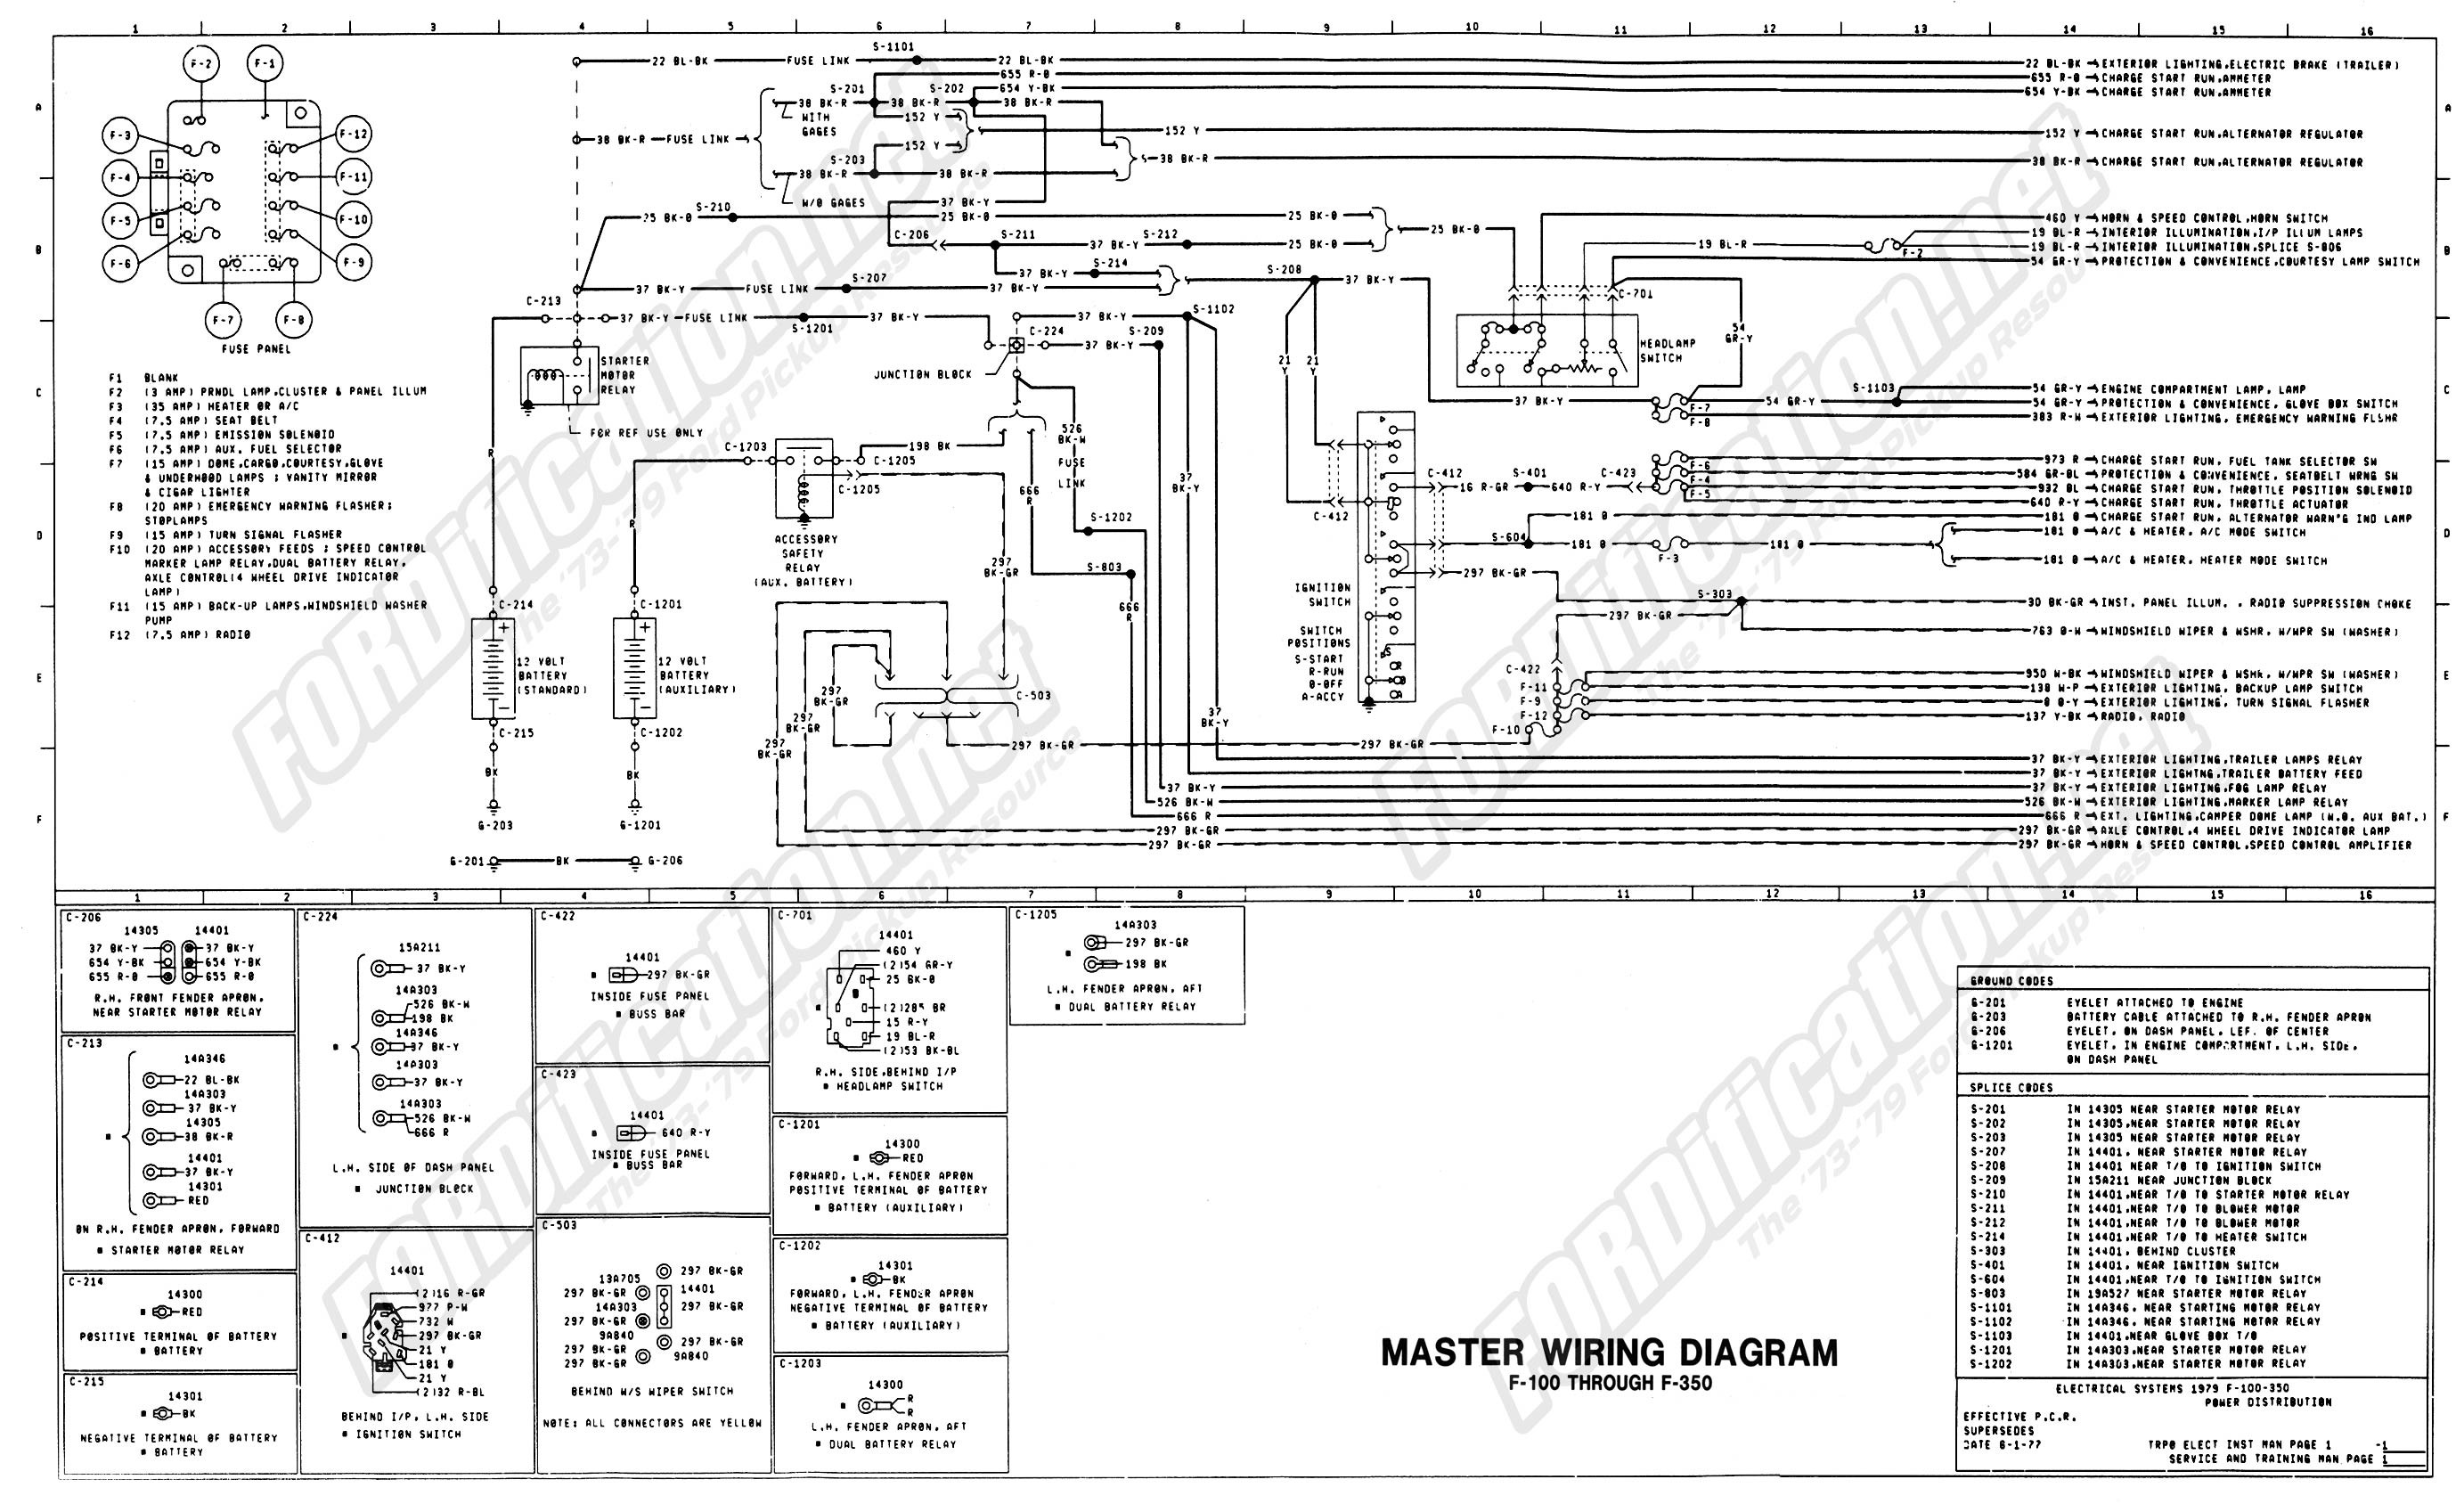 Wiring Diagram On ford 650 1973 1979 ford Truck Wiring Diagrams & Schematics Of Wiring Diagram On ford 650